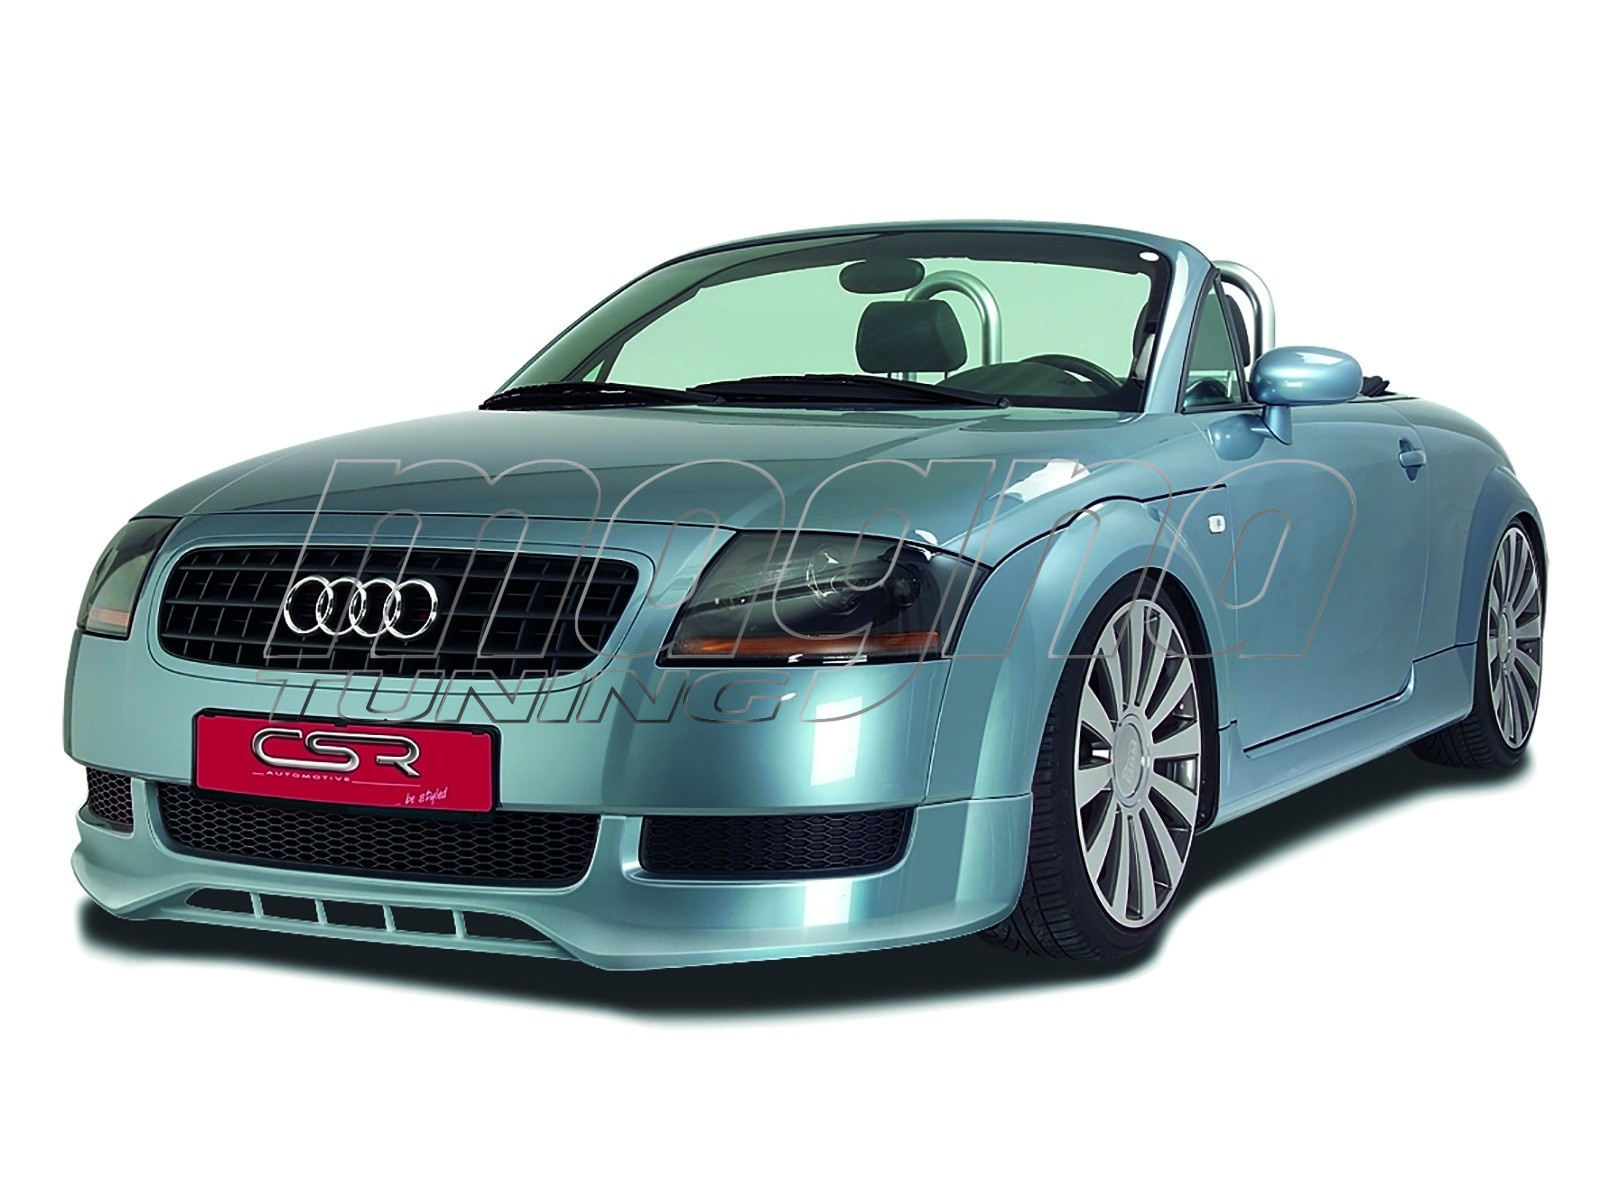 audi tt 8n newline front bumper extension. Black Bedroom Furniture Sets. Home Design Ideas